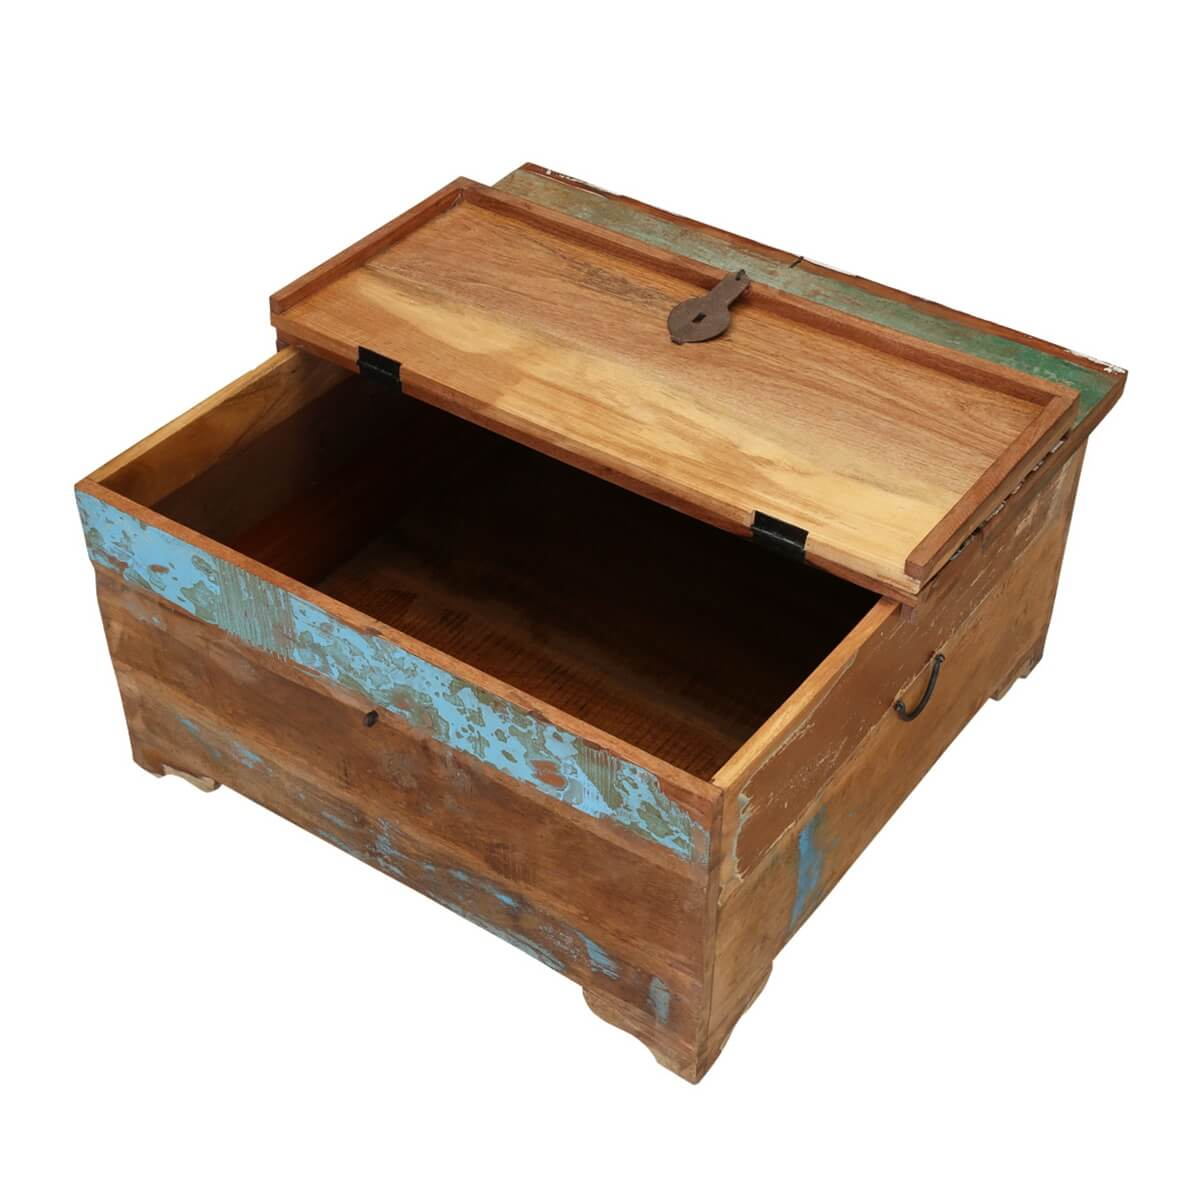 Appalachia Handcrafted Reclaimed Wood Coffee Table Trunks